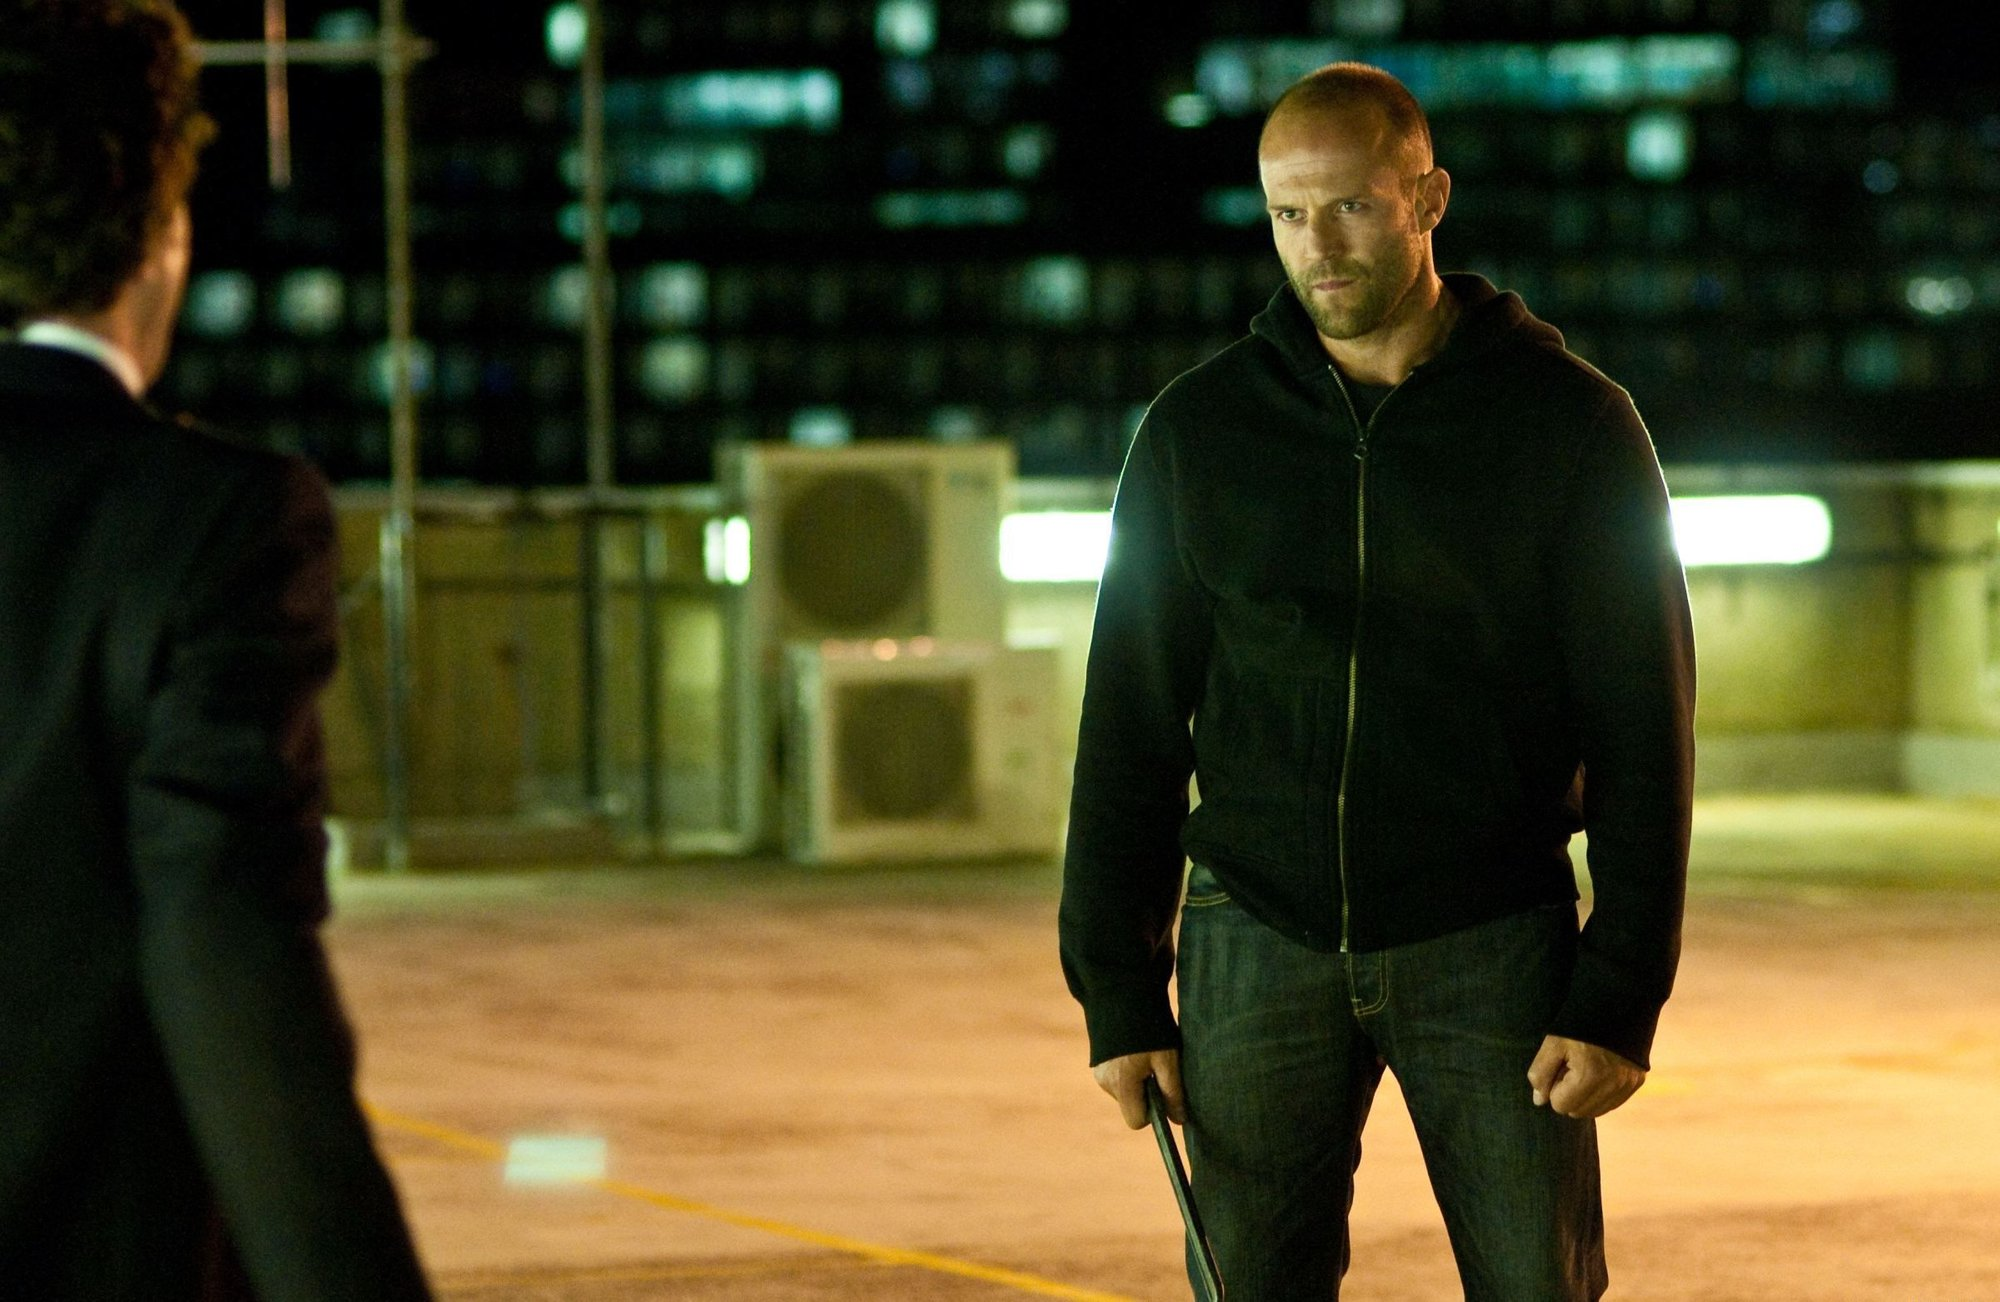 Images of Jason Statham Movies List - #rock-cafe